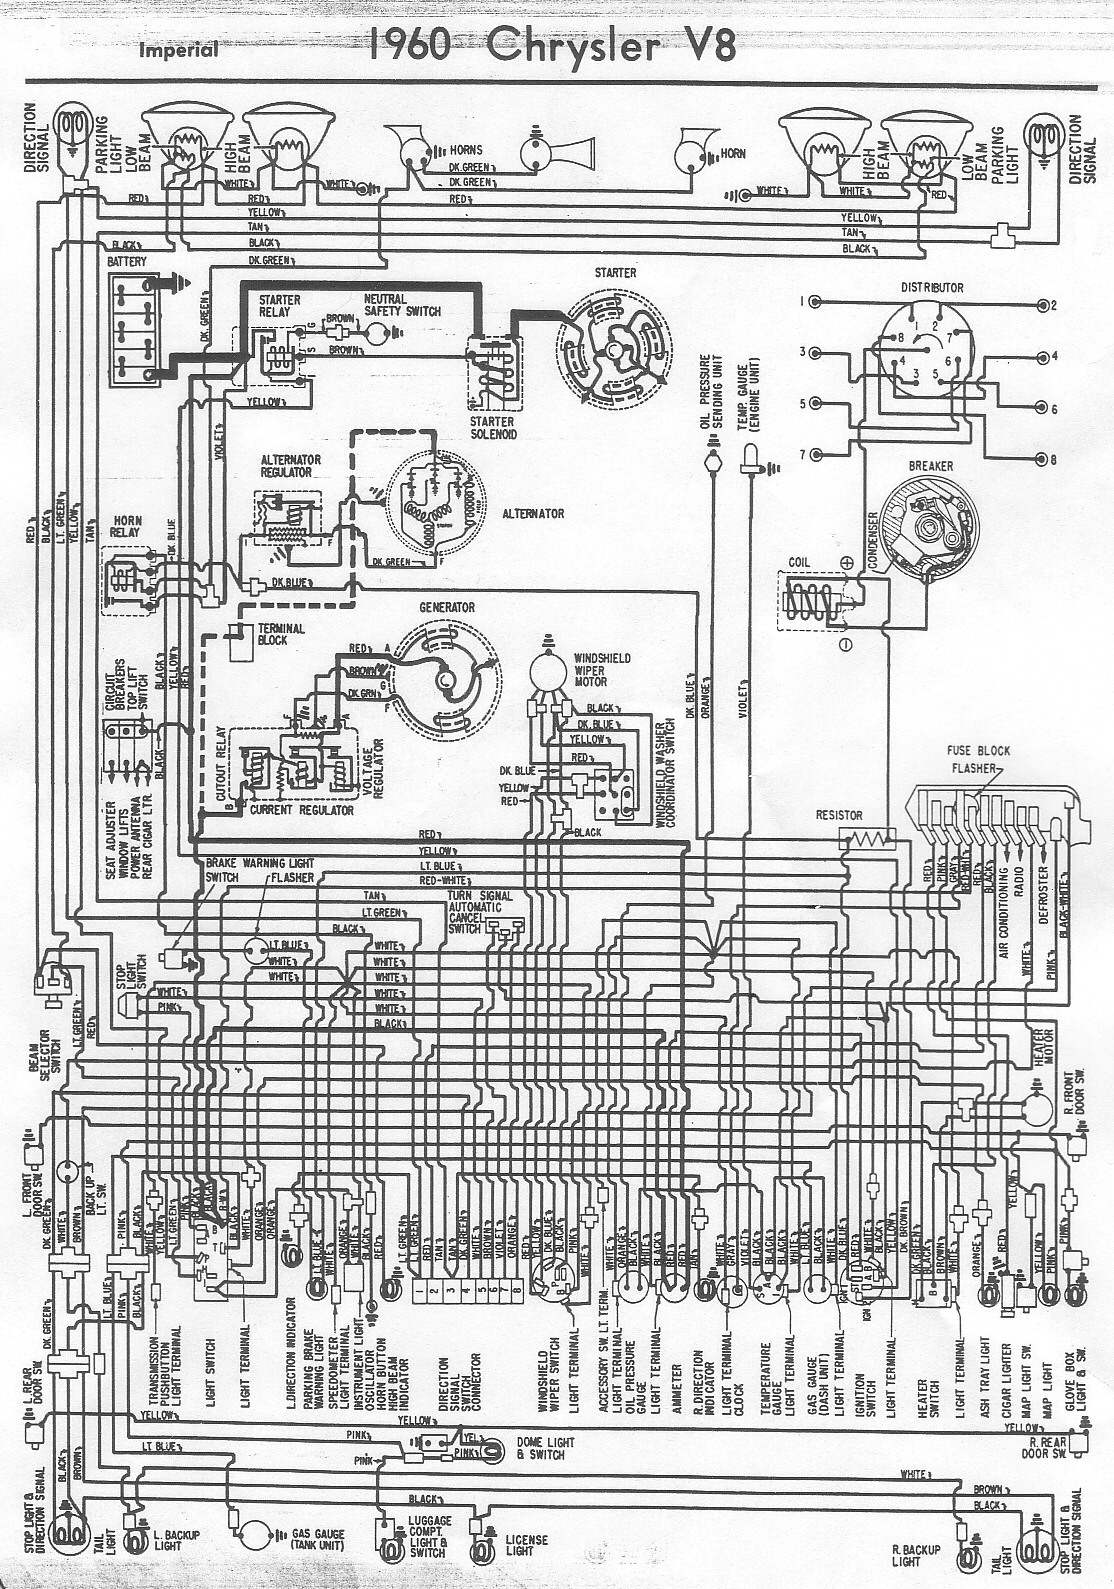 Free Auto Wiring Diagram: 1960 Chrysler V8 Imperial Wiring diagram